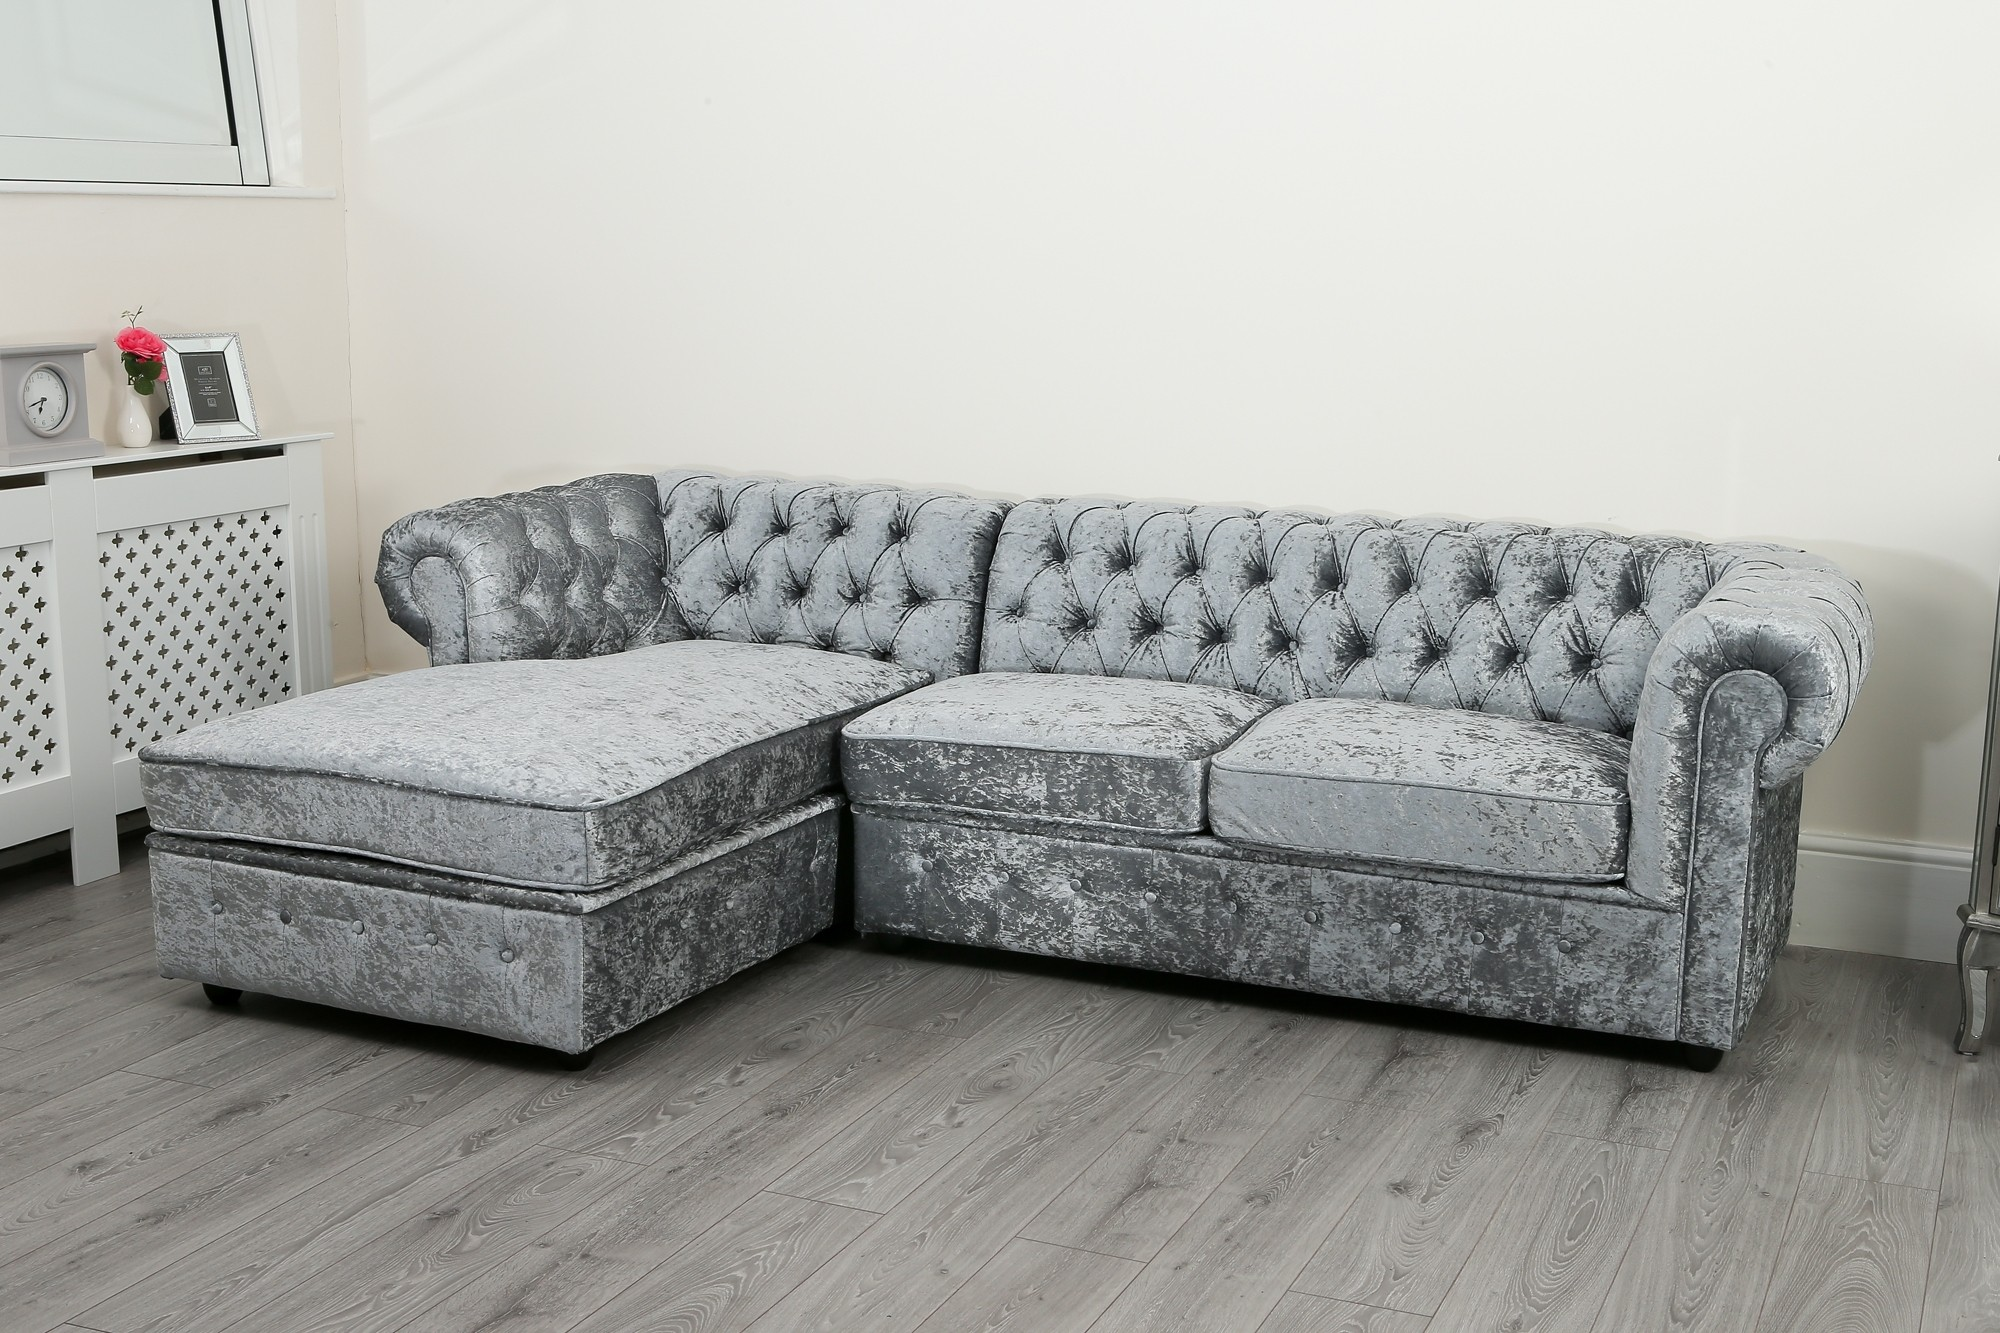 crushed velvet grey sofa bed stretch covers for cushions uk empire chesterfield corner in silver